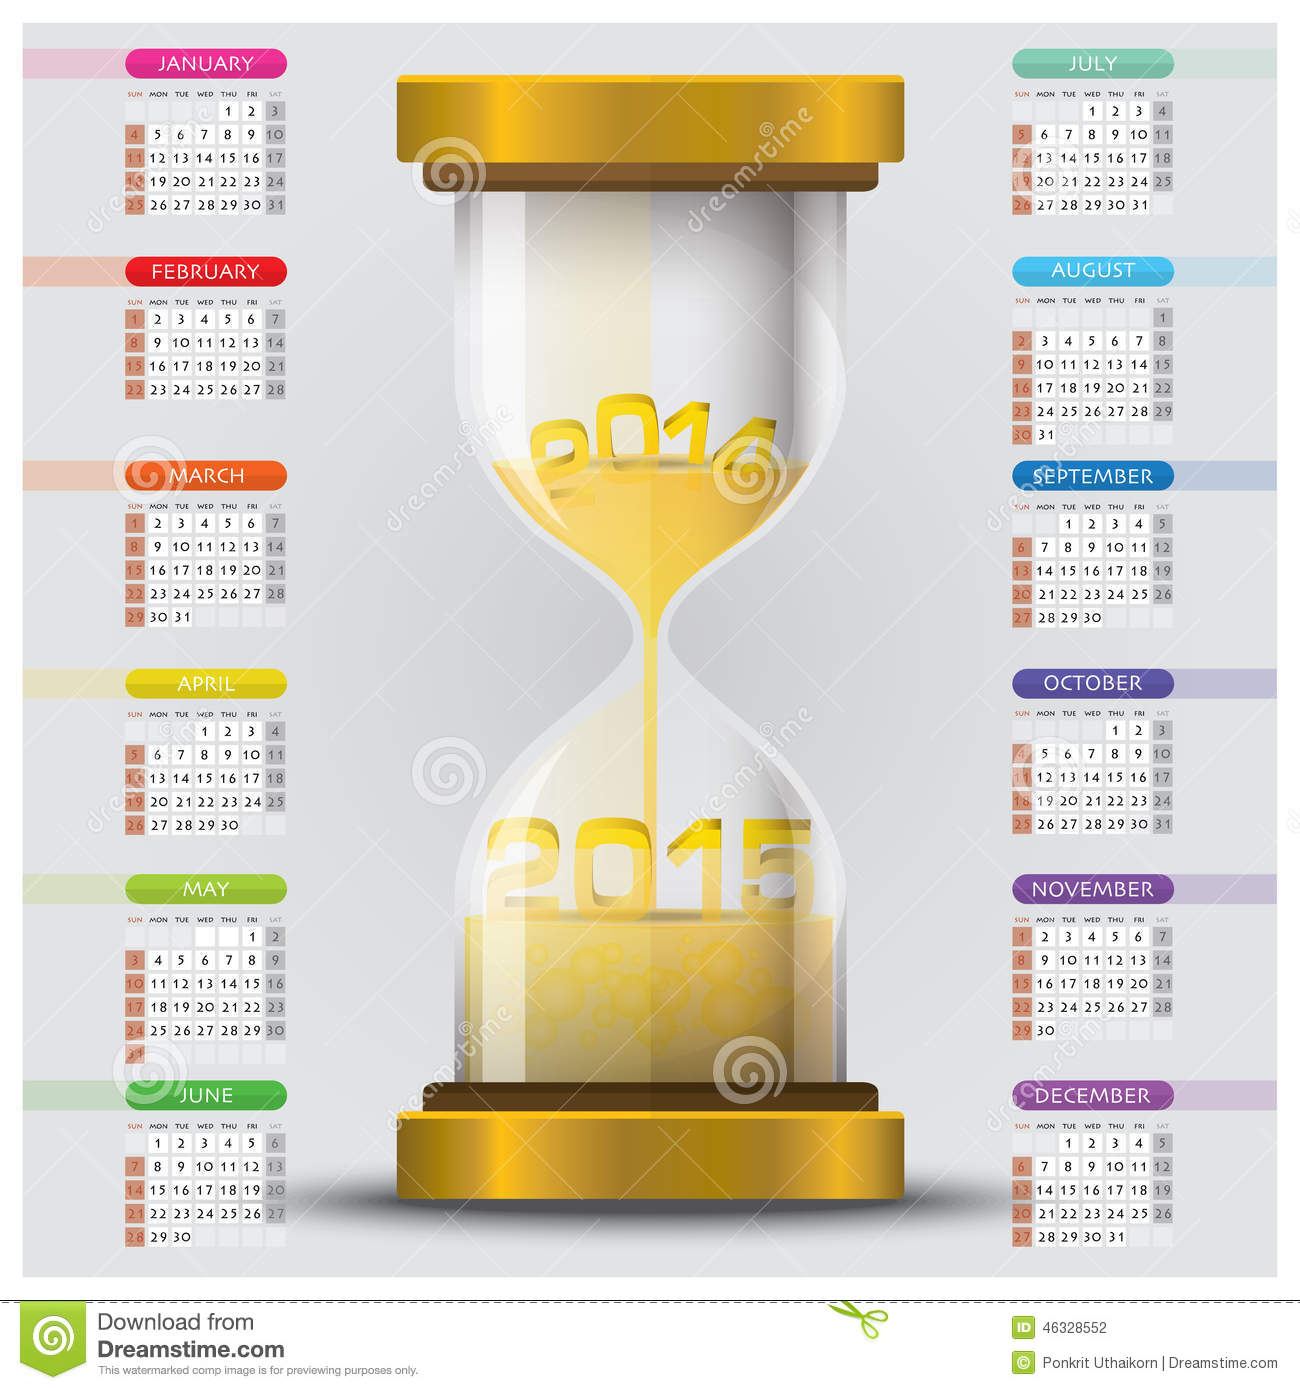 Countdown Template Pictures to Pin PinsDaddy – Countdown Calendar Template